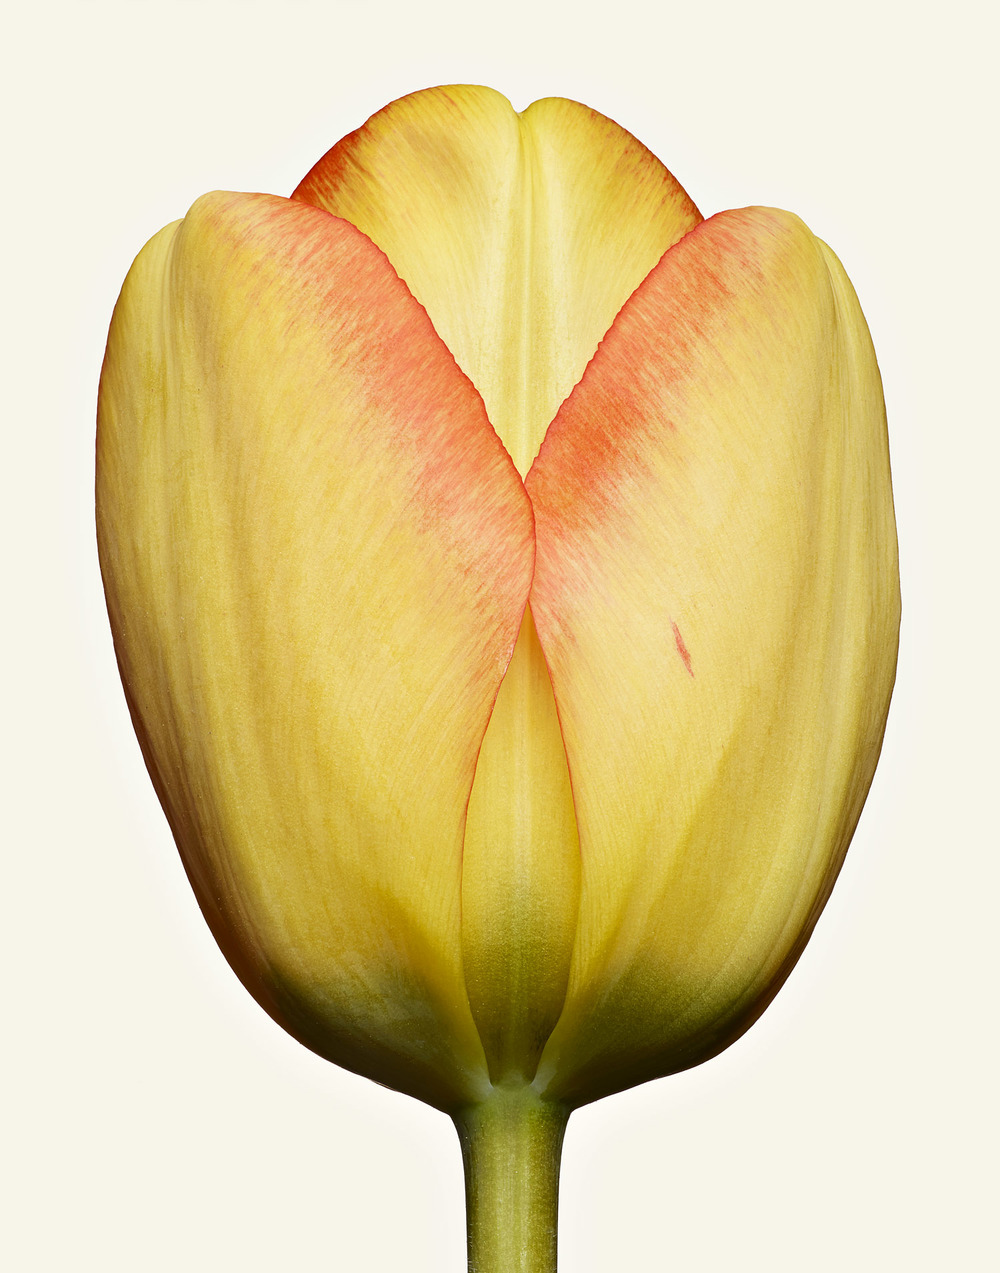 Ralph_Smith_TEST0502131_TULIP_CLOSE_01_01_w.jpg